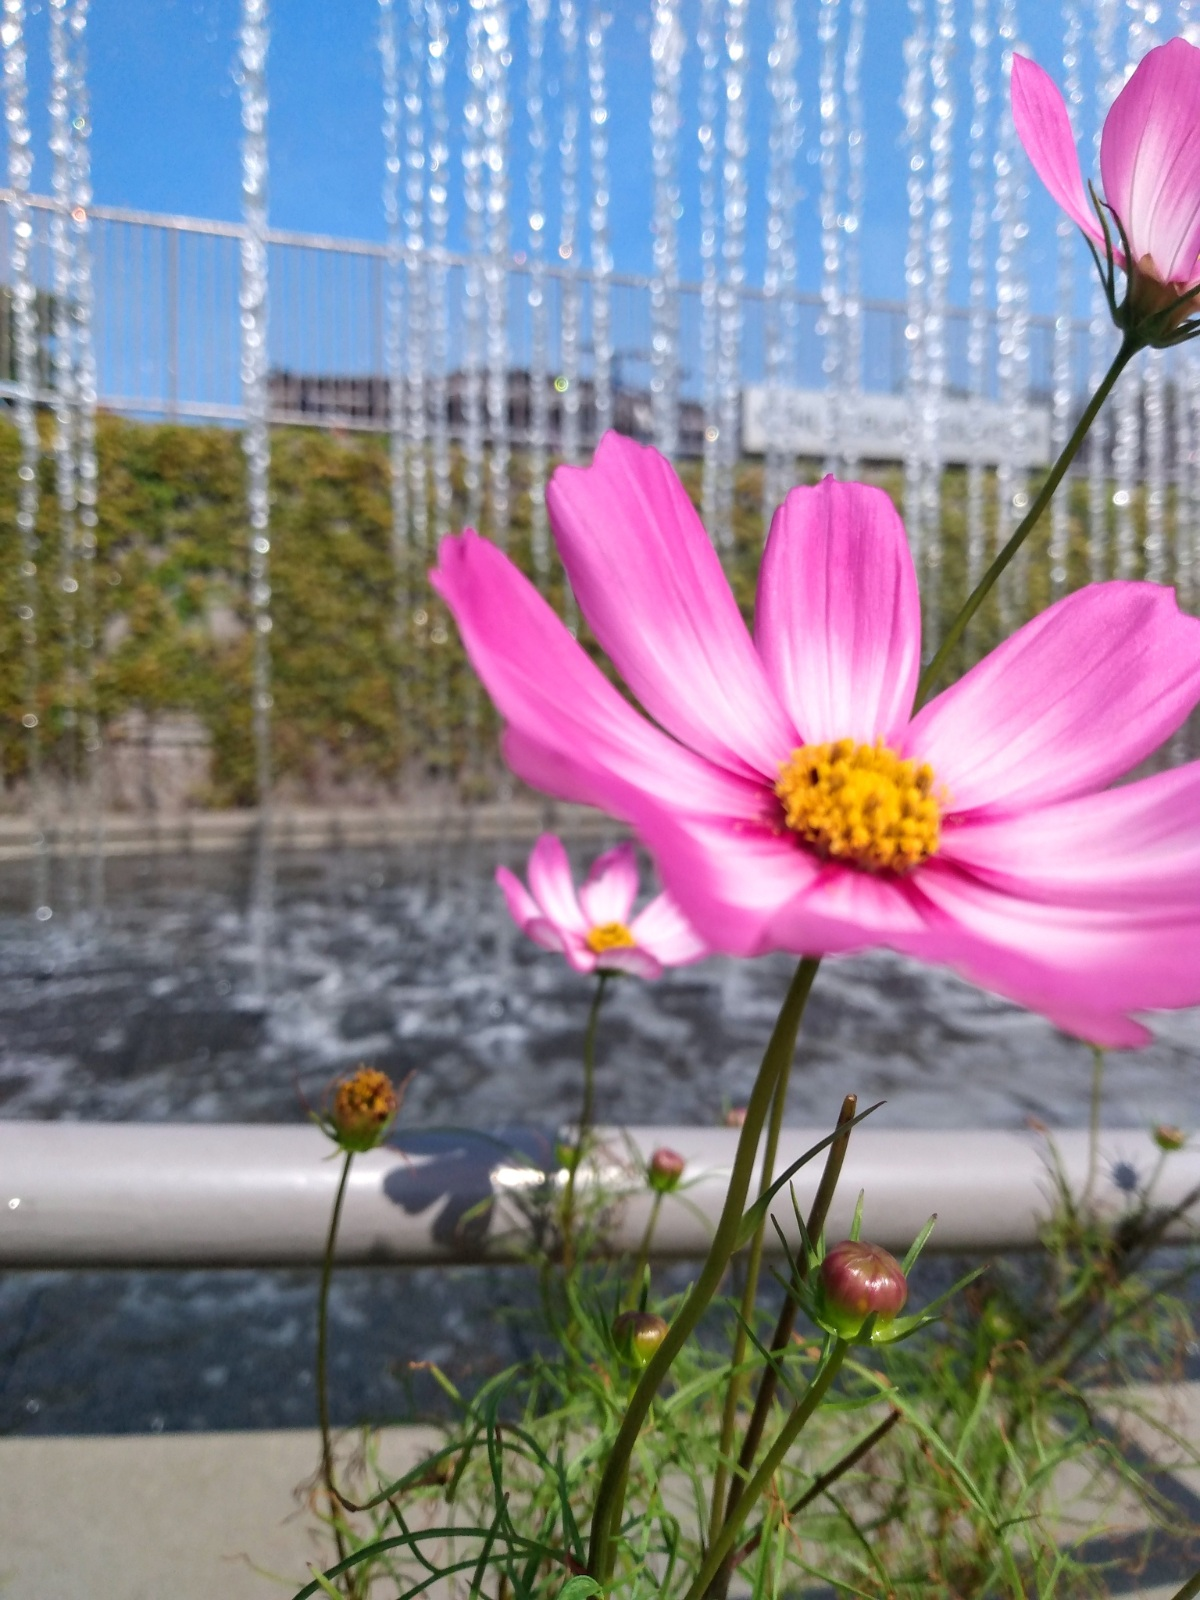 Flowers and Fountains